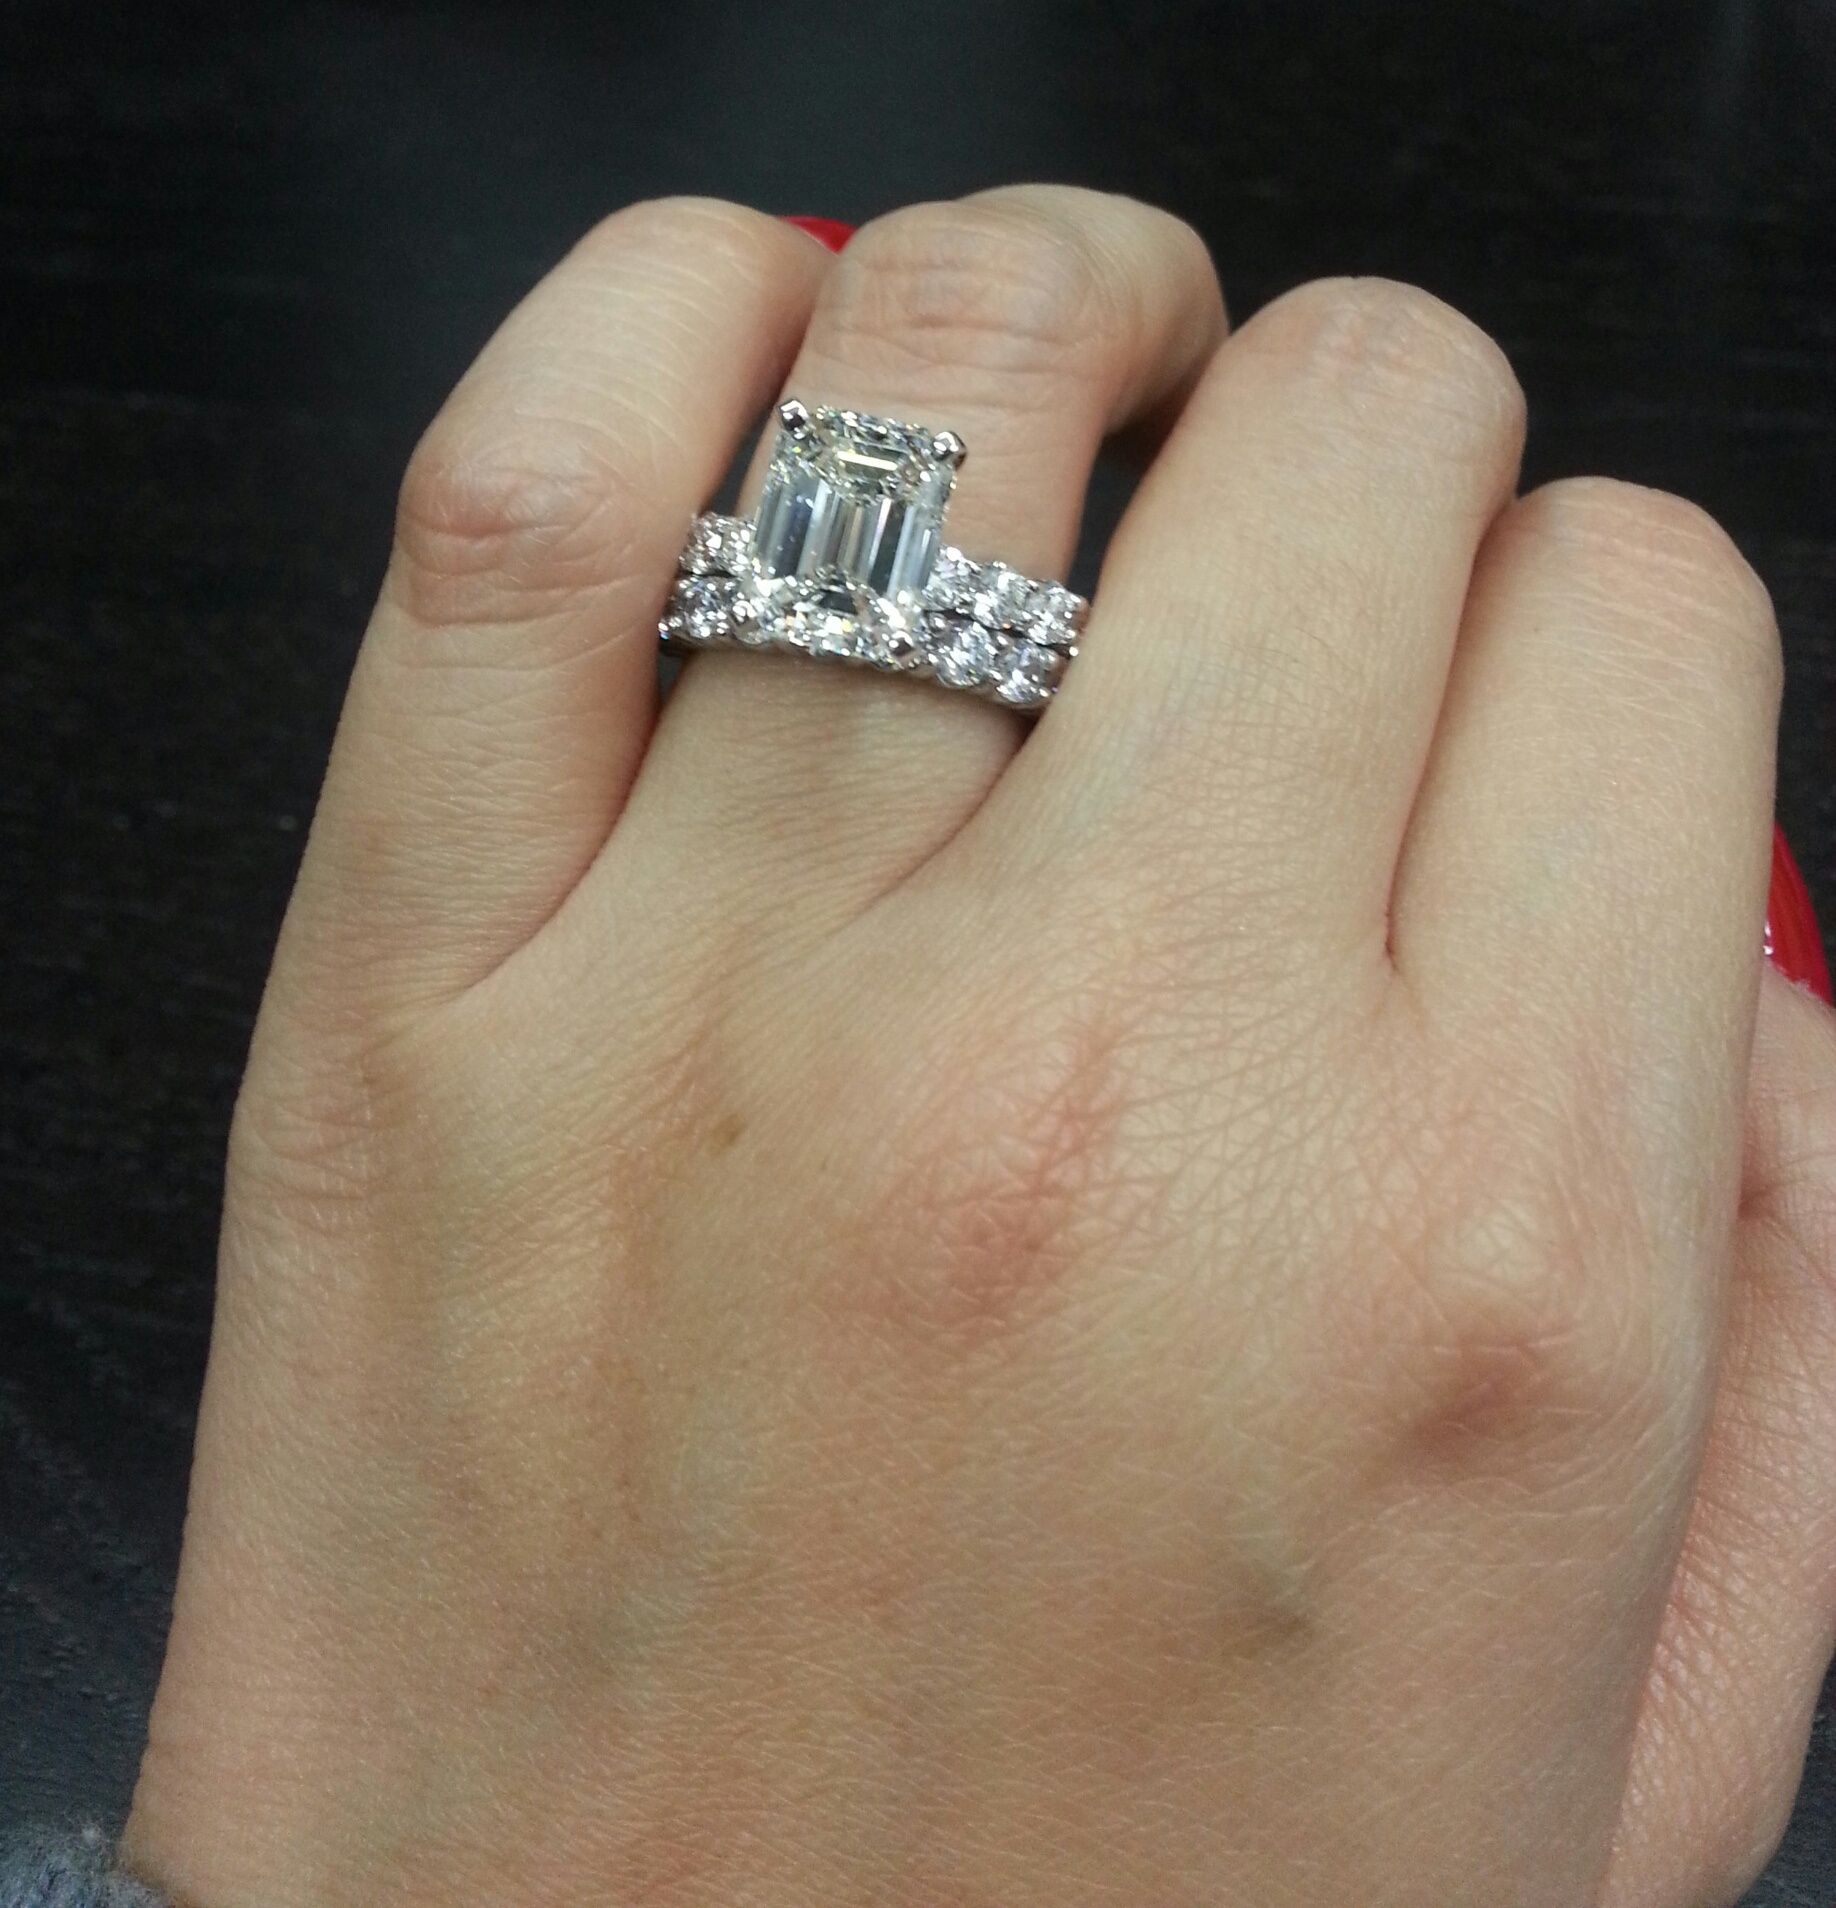 Celebritystyle dream ring 350 ct emerald cut diamond engagement